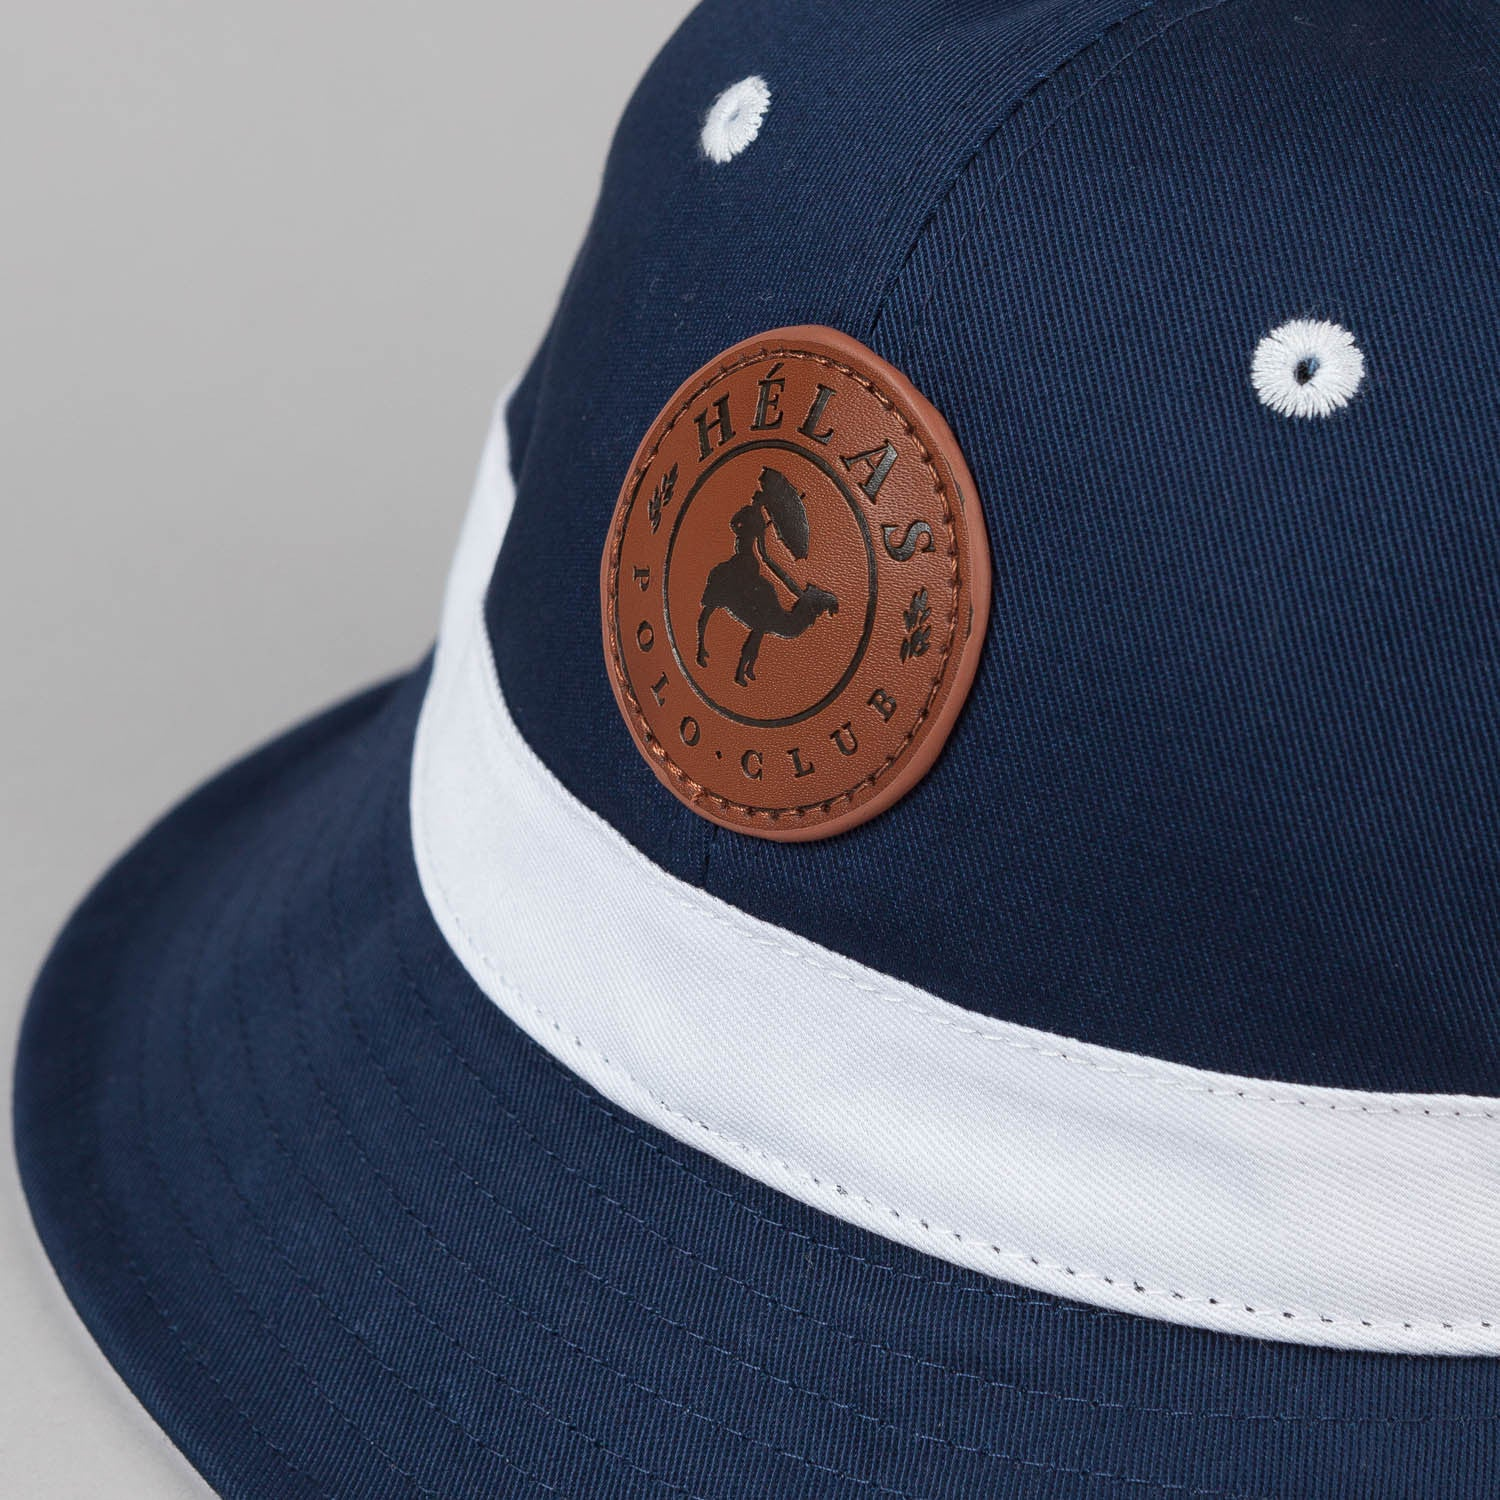 Helas Polo Club 6 Panel Bucket Hat - Navy Twill